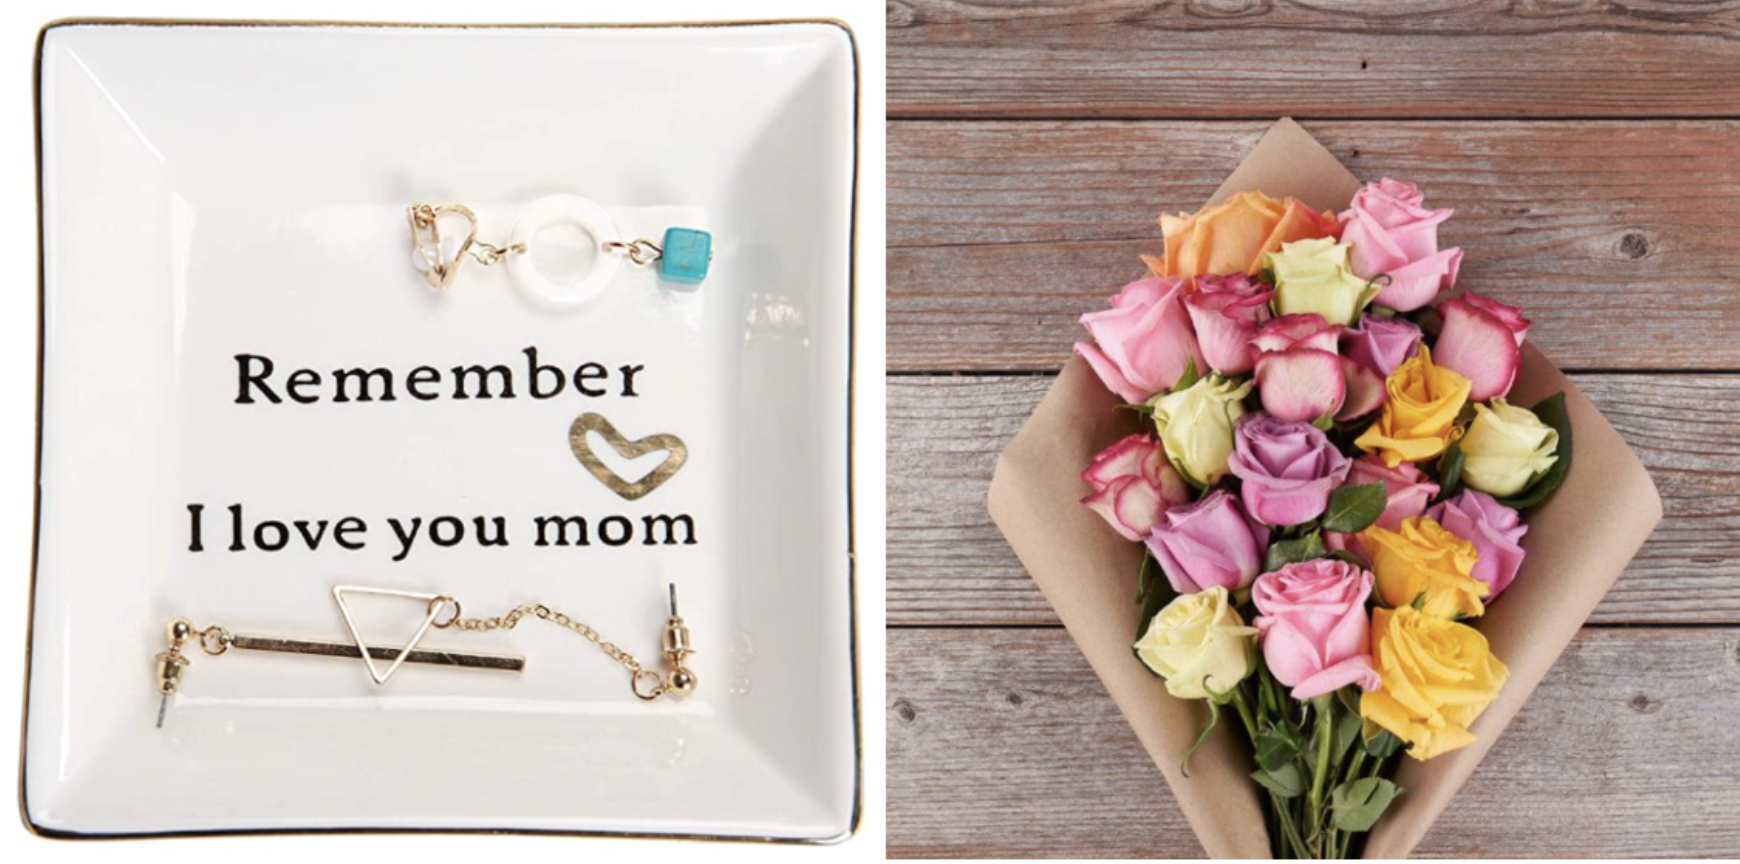 20 Last-Minute Mother's Day Gift Ideas That Are Still Totally Thoughtful